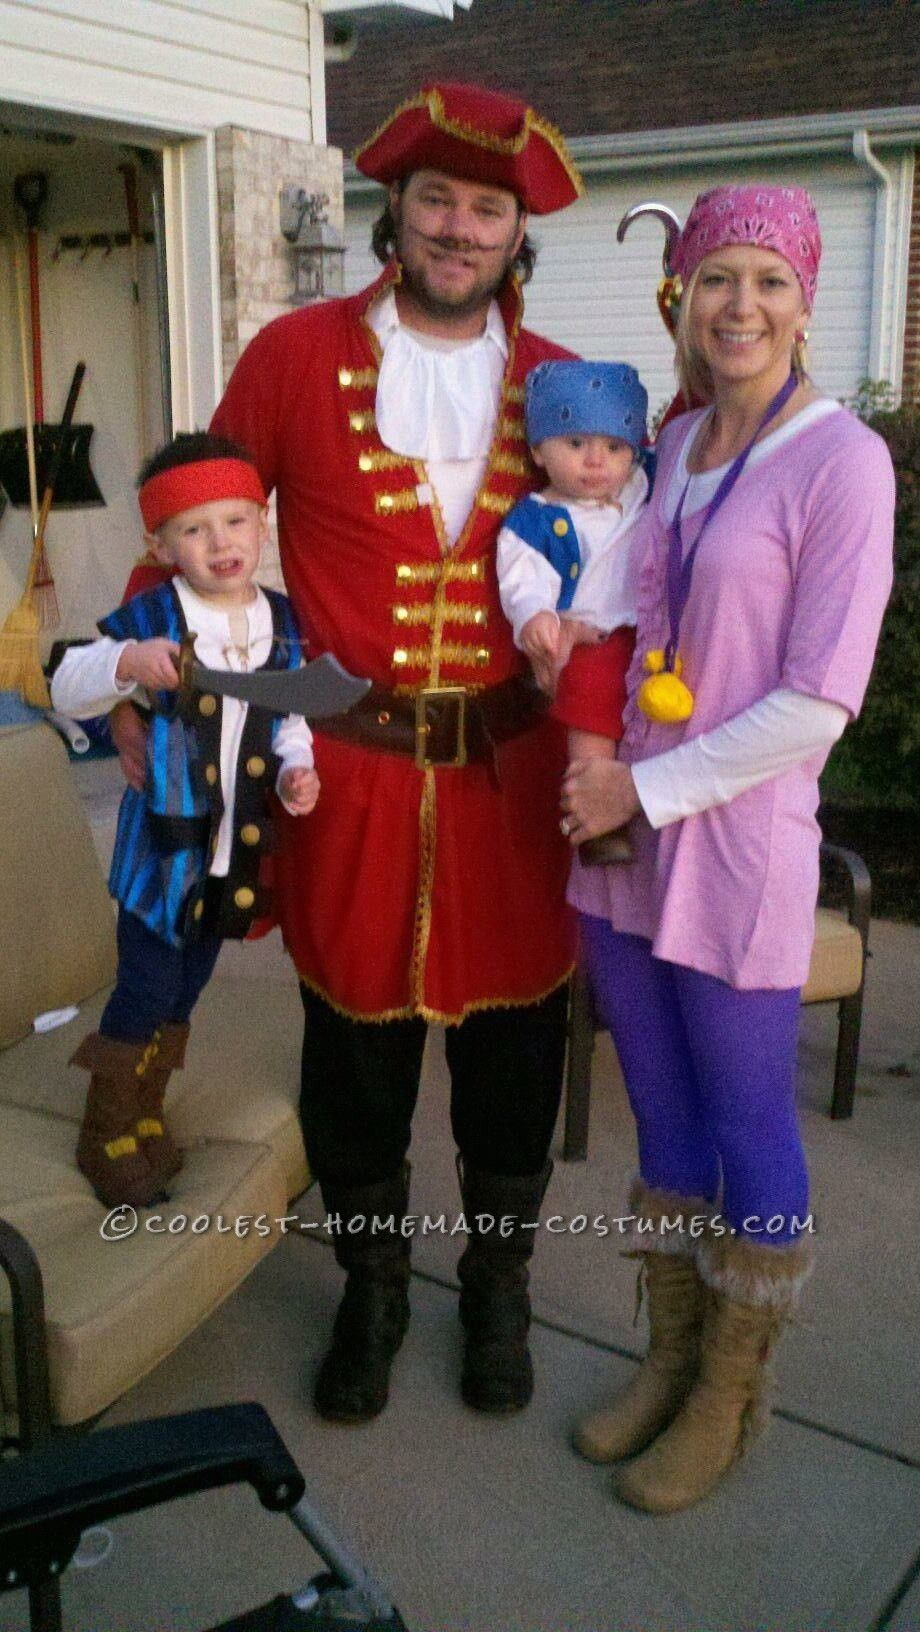 coolest jake and the neverland pirates family costume | kids